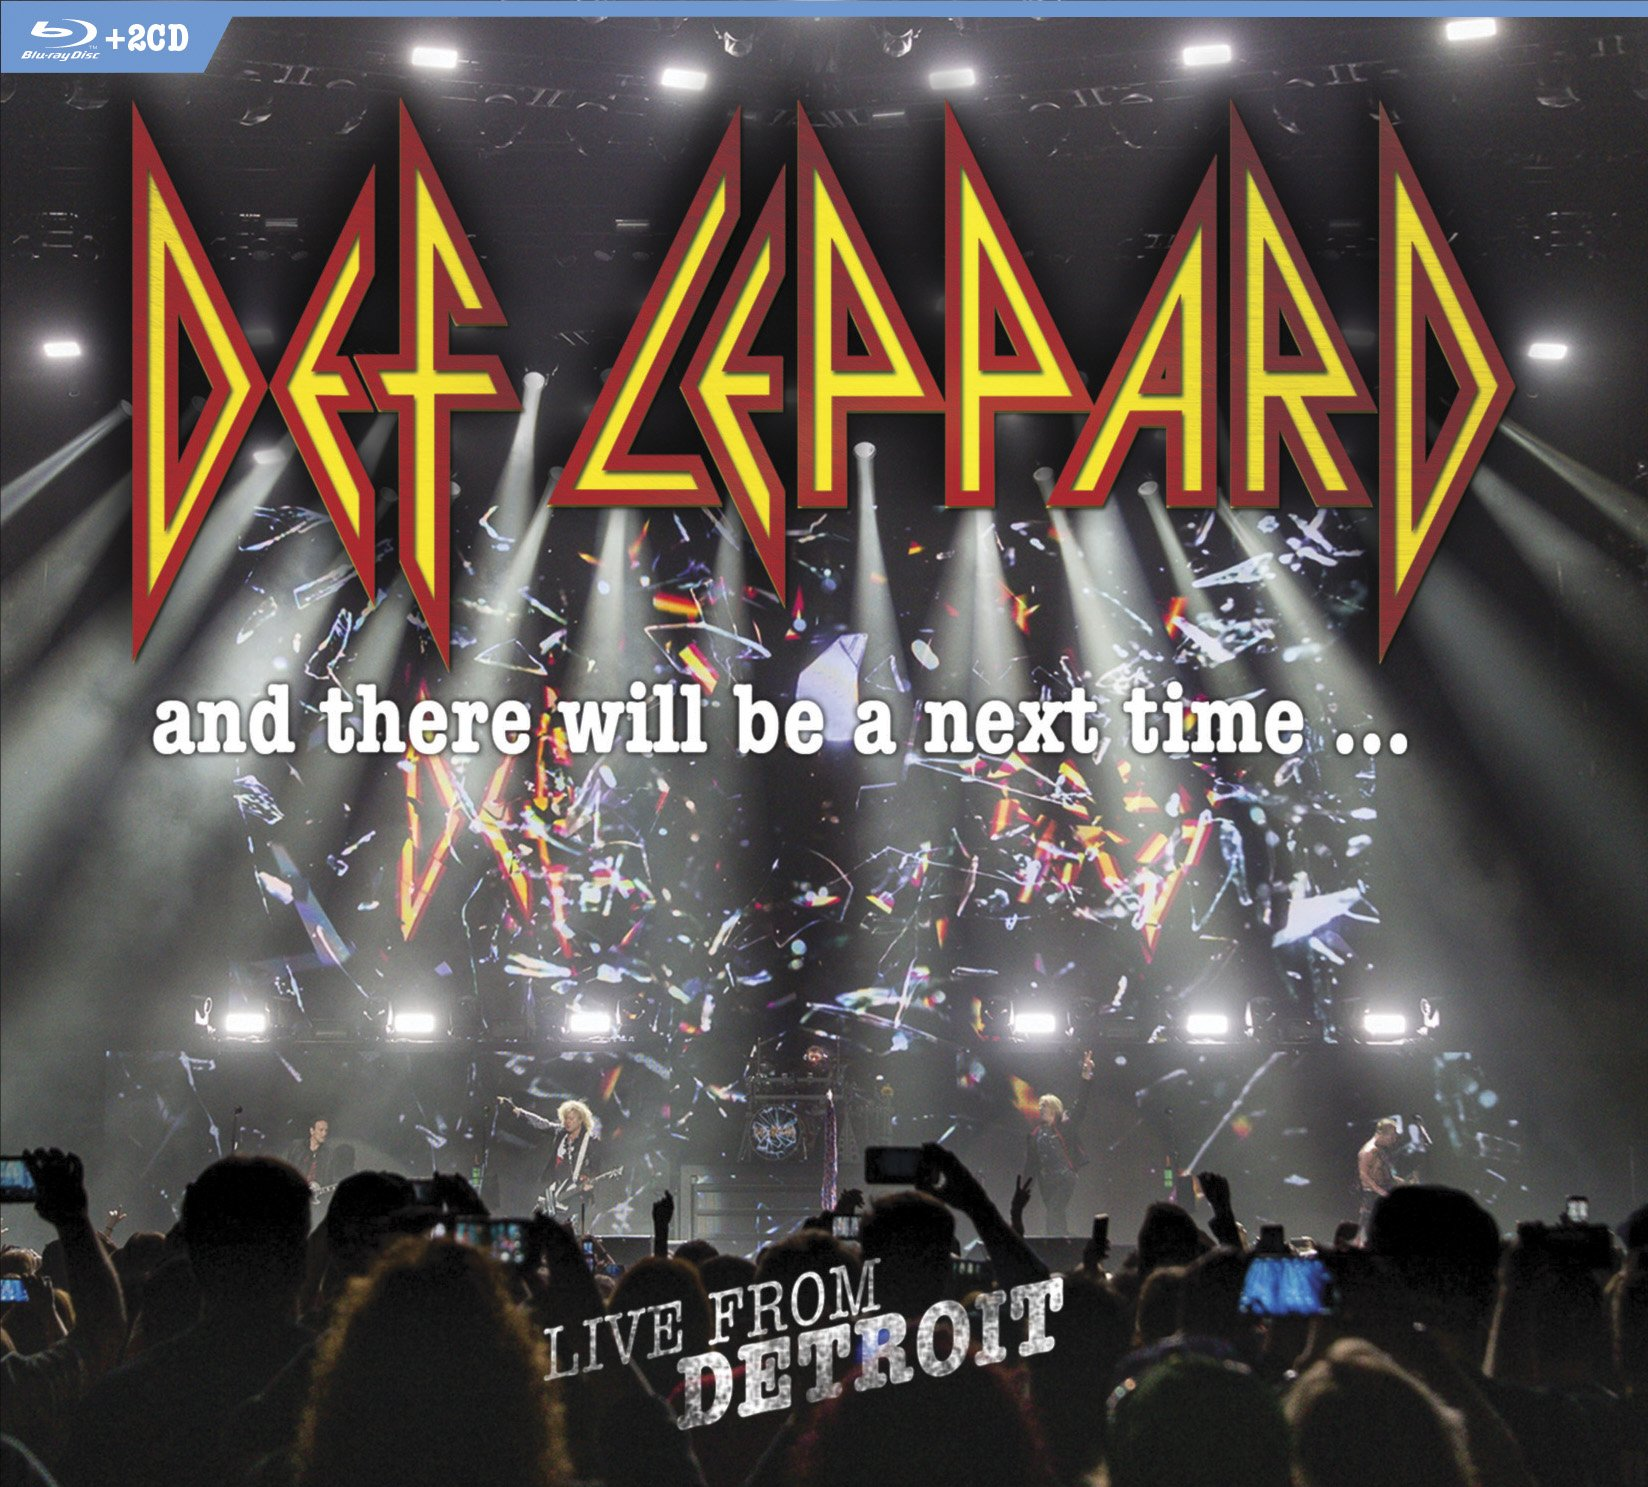 Blu-ray : Def Leppard - And There Will Be A Next Time... Live From Detroit (With CD, Digipack Packaging, 3 Disc)